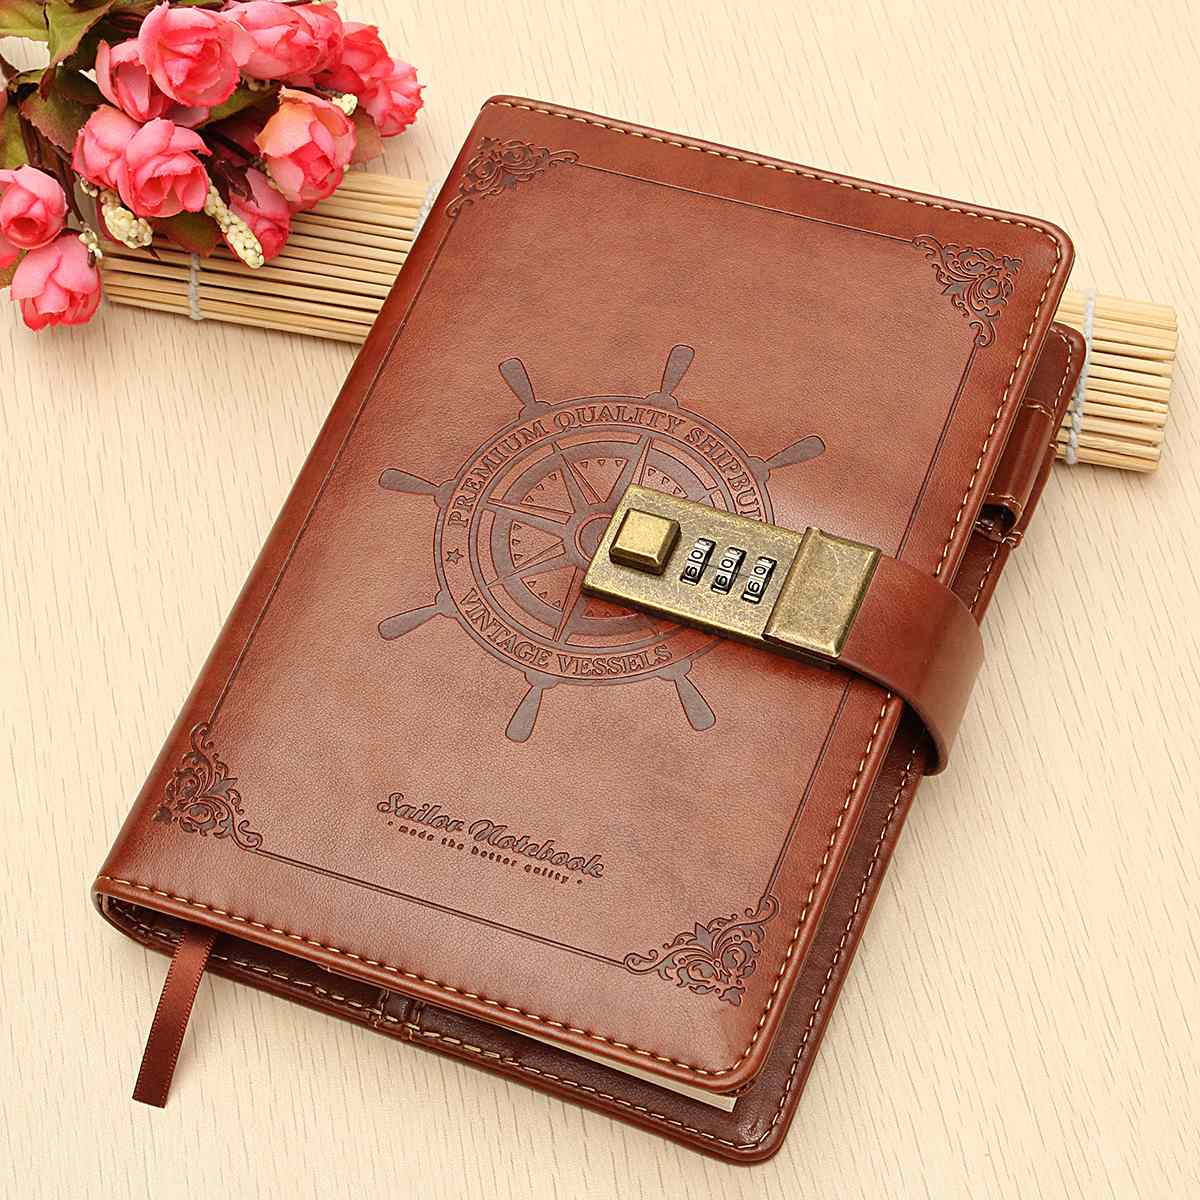 1pc Vintage Rudder Brown Leather Journal Blank Diary Note Book With Password Code Lock Office School Stationery Supplies Gifts